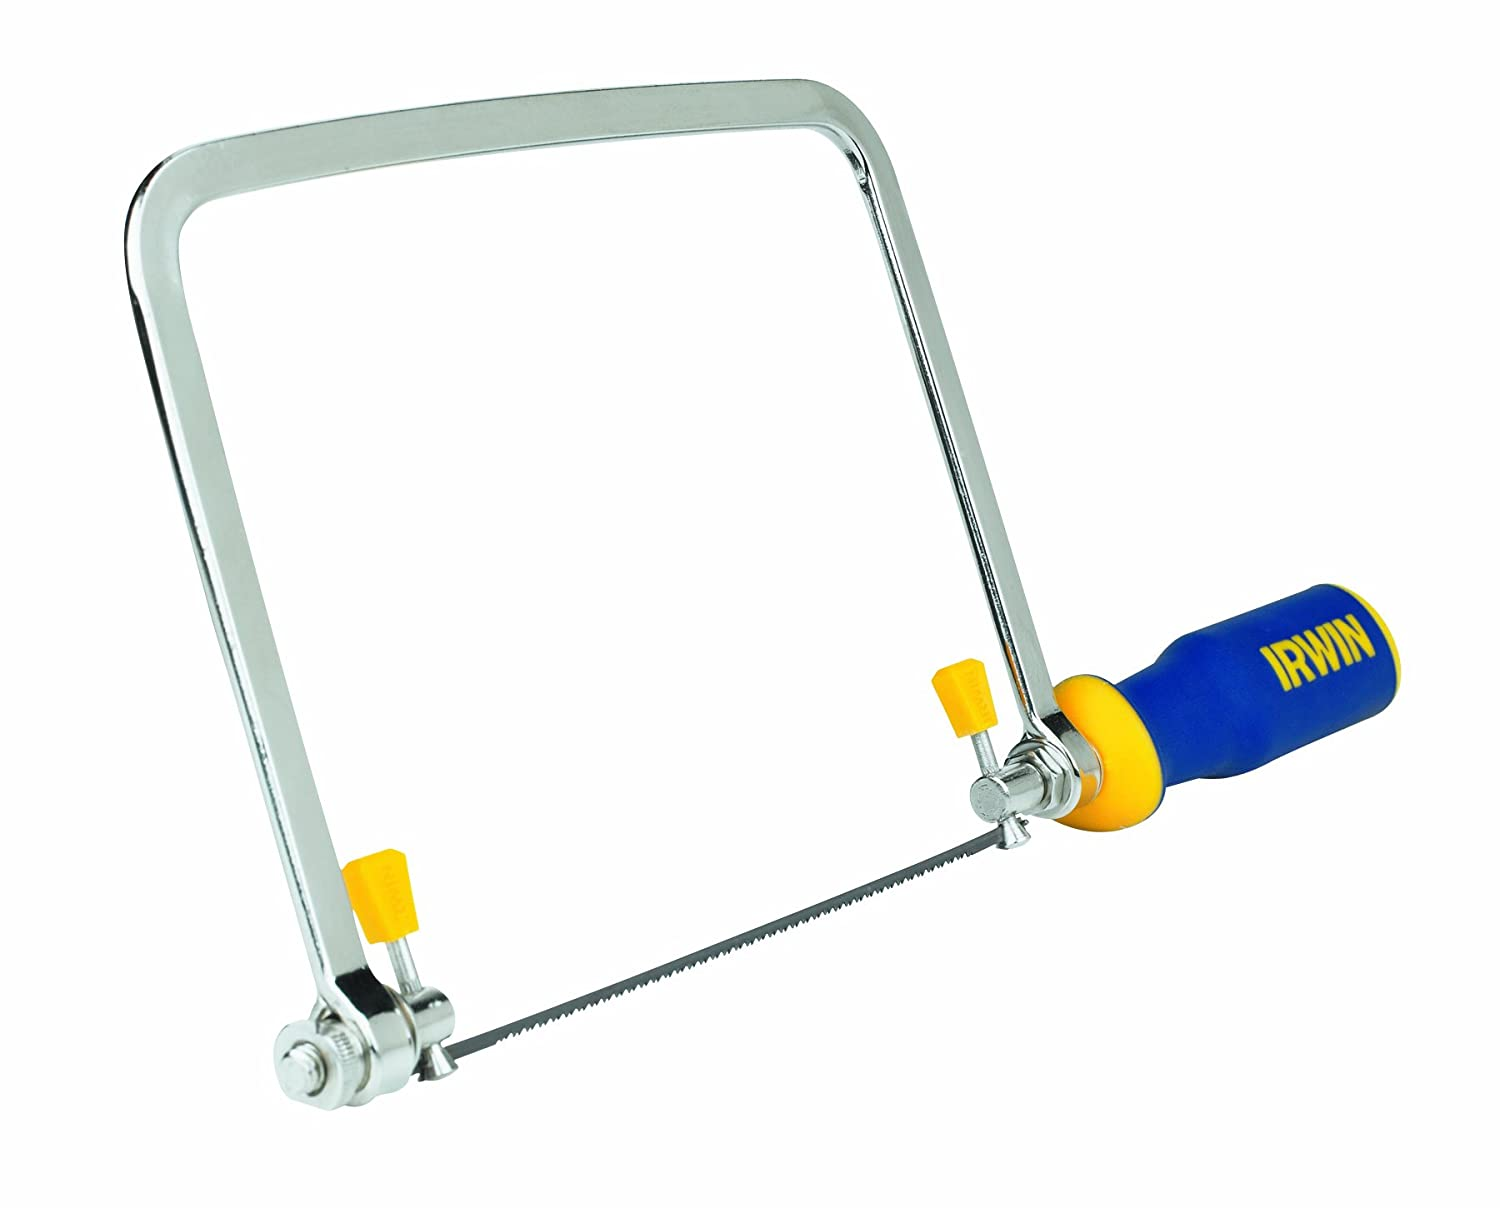 Irwin tools protouch coping saw 2014400 amazon keyboard keysfo Choice Image